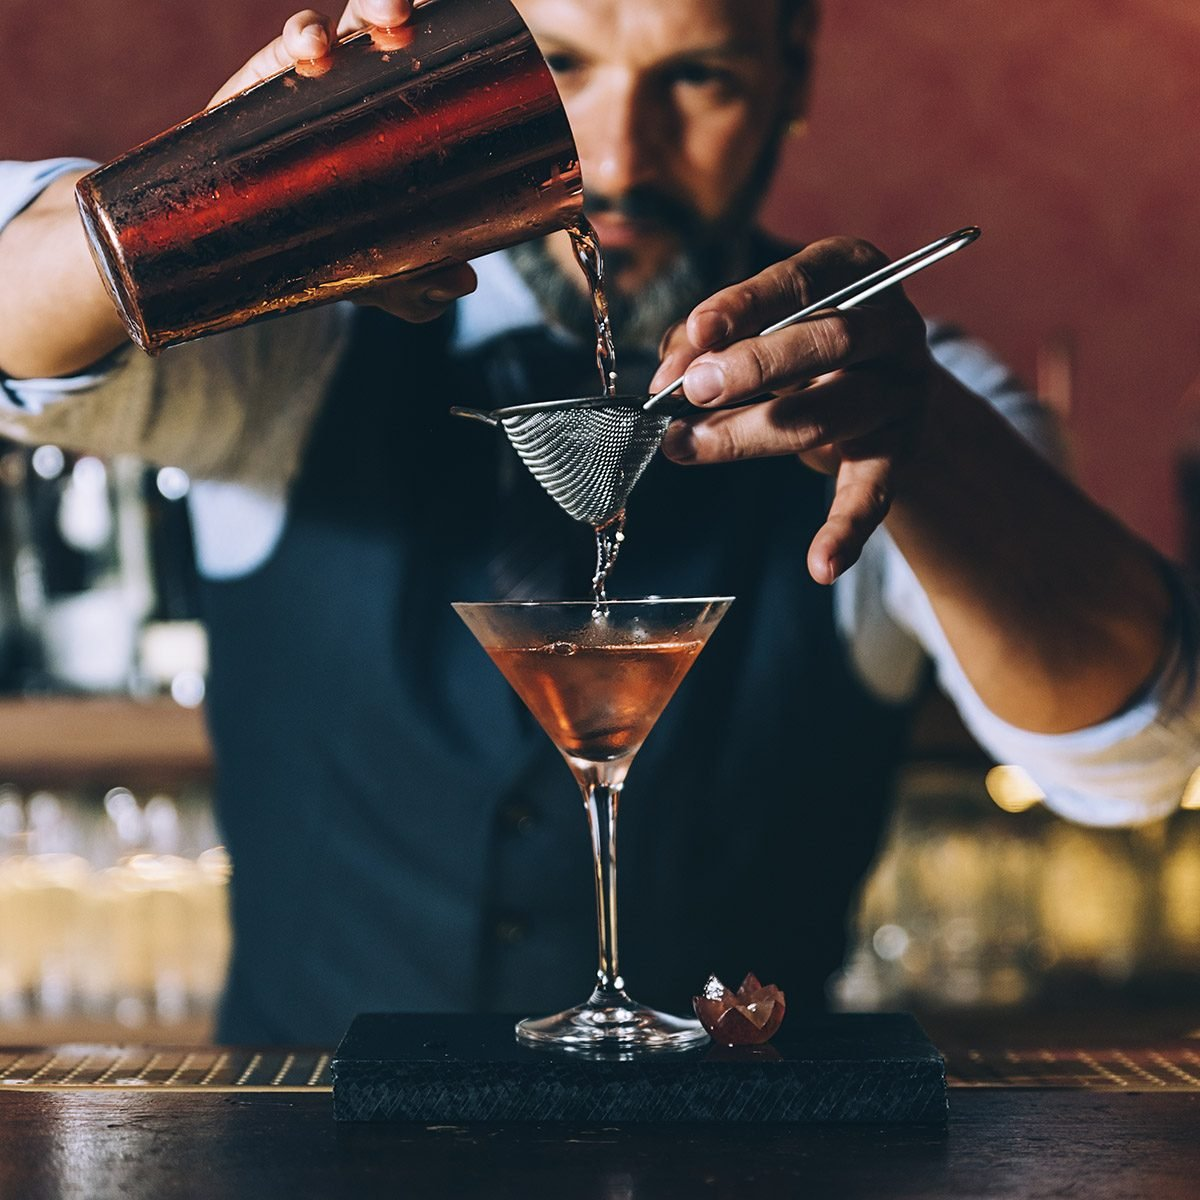 10 Things You Shouldn't Say to a Bartender